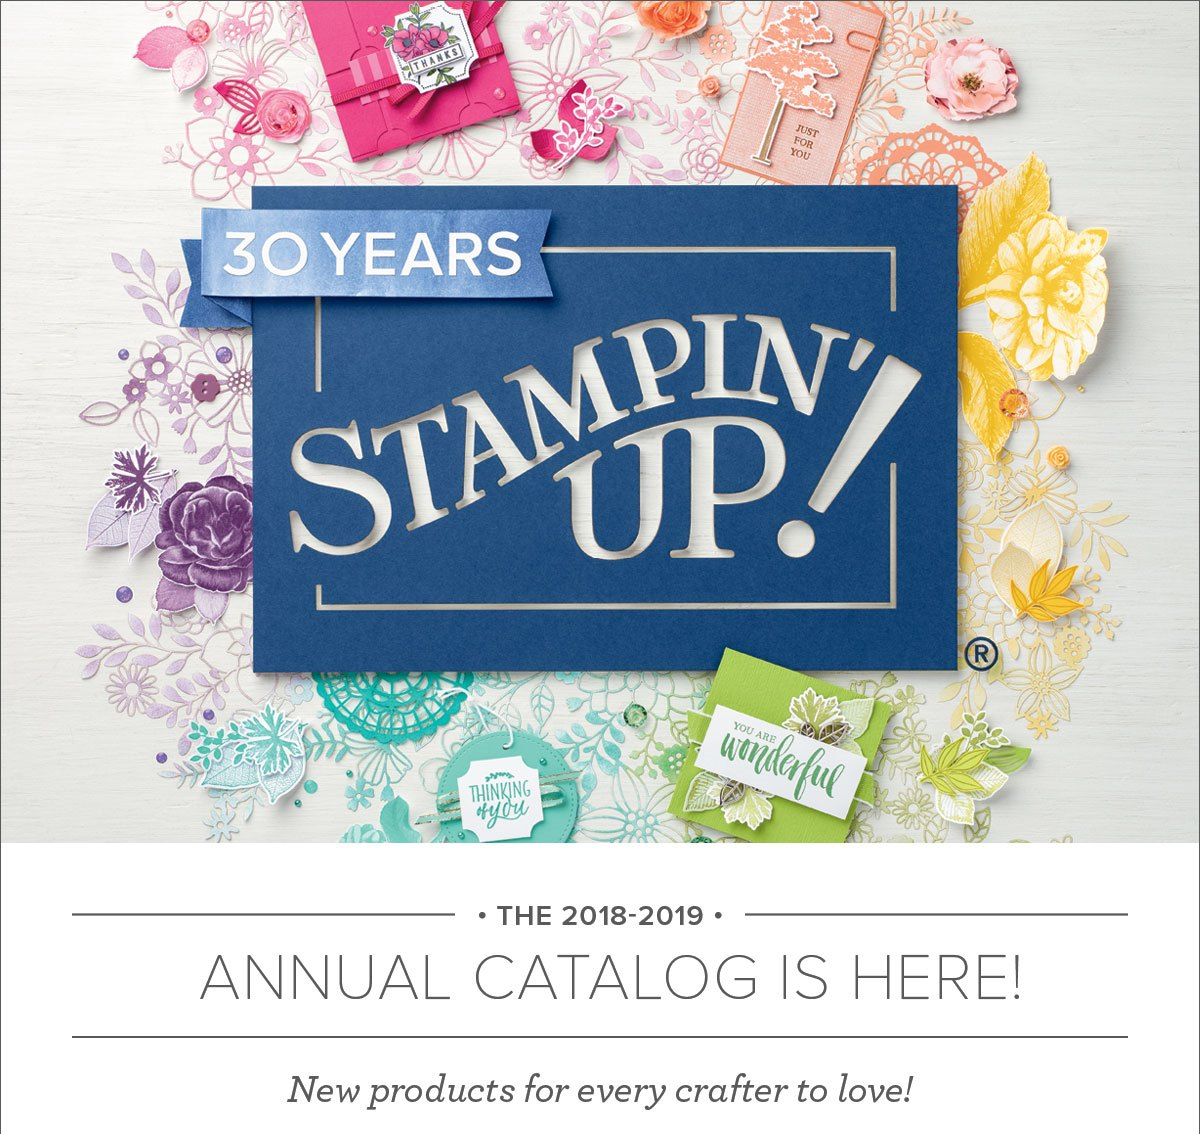 Annual Catalog 2017-2018 June 1, 2017 - May 31, 2018